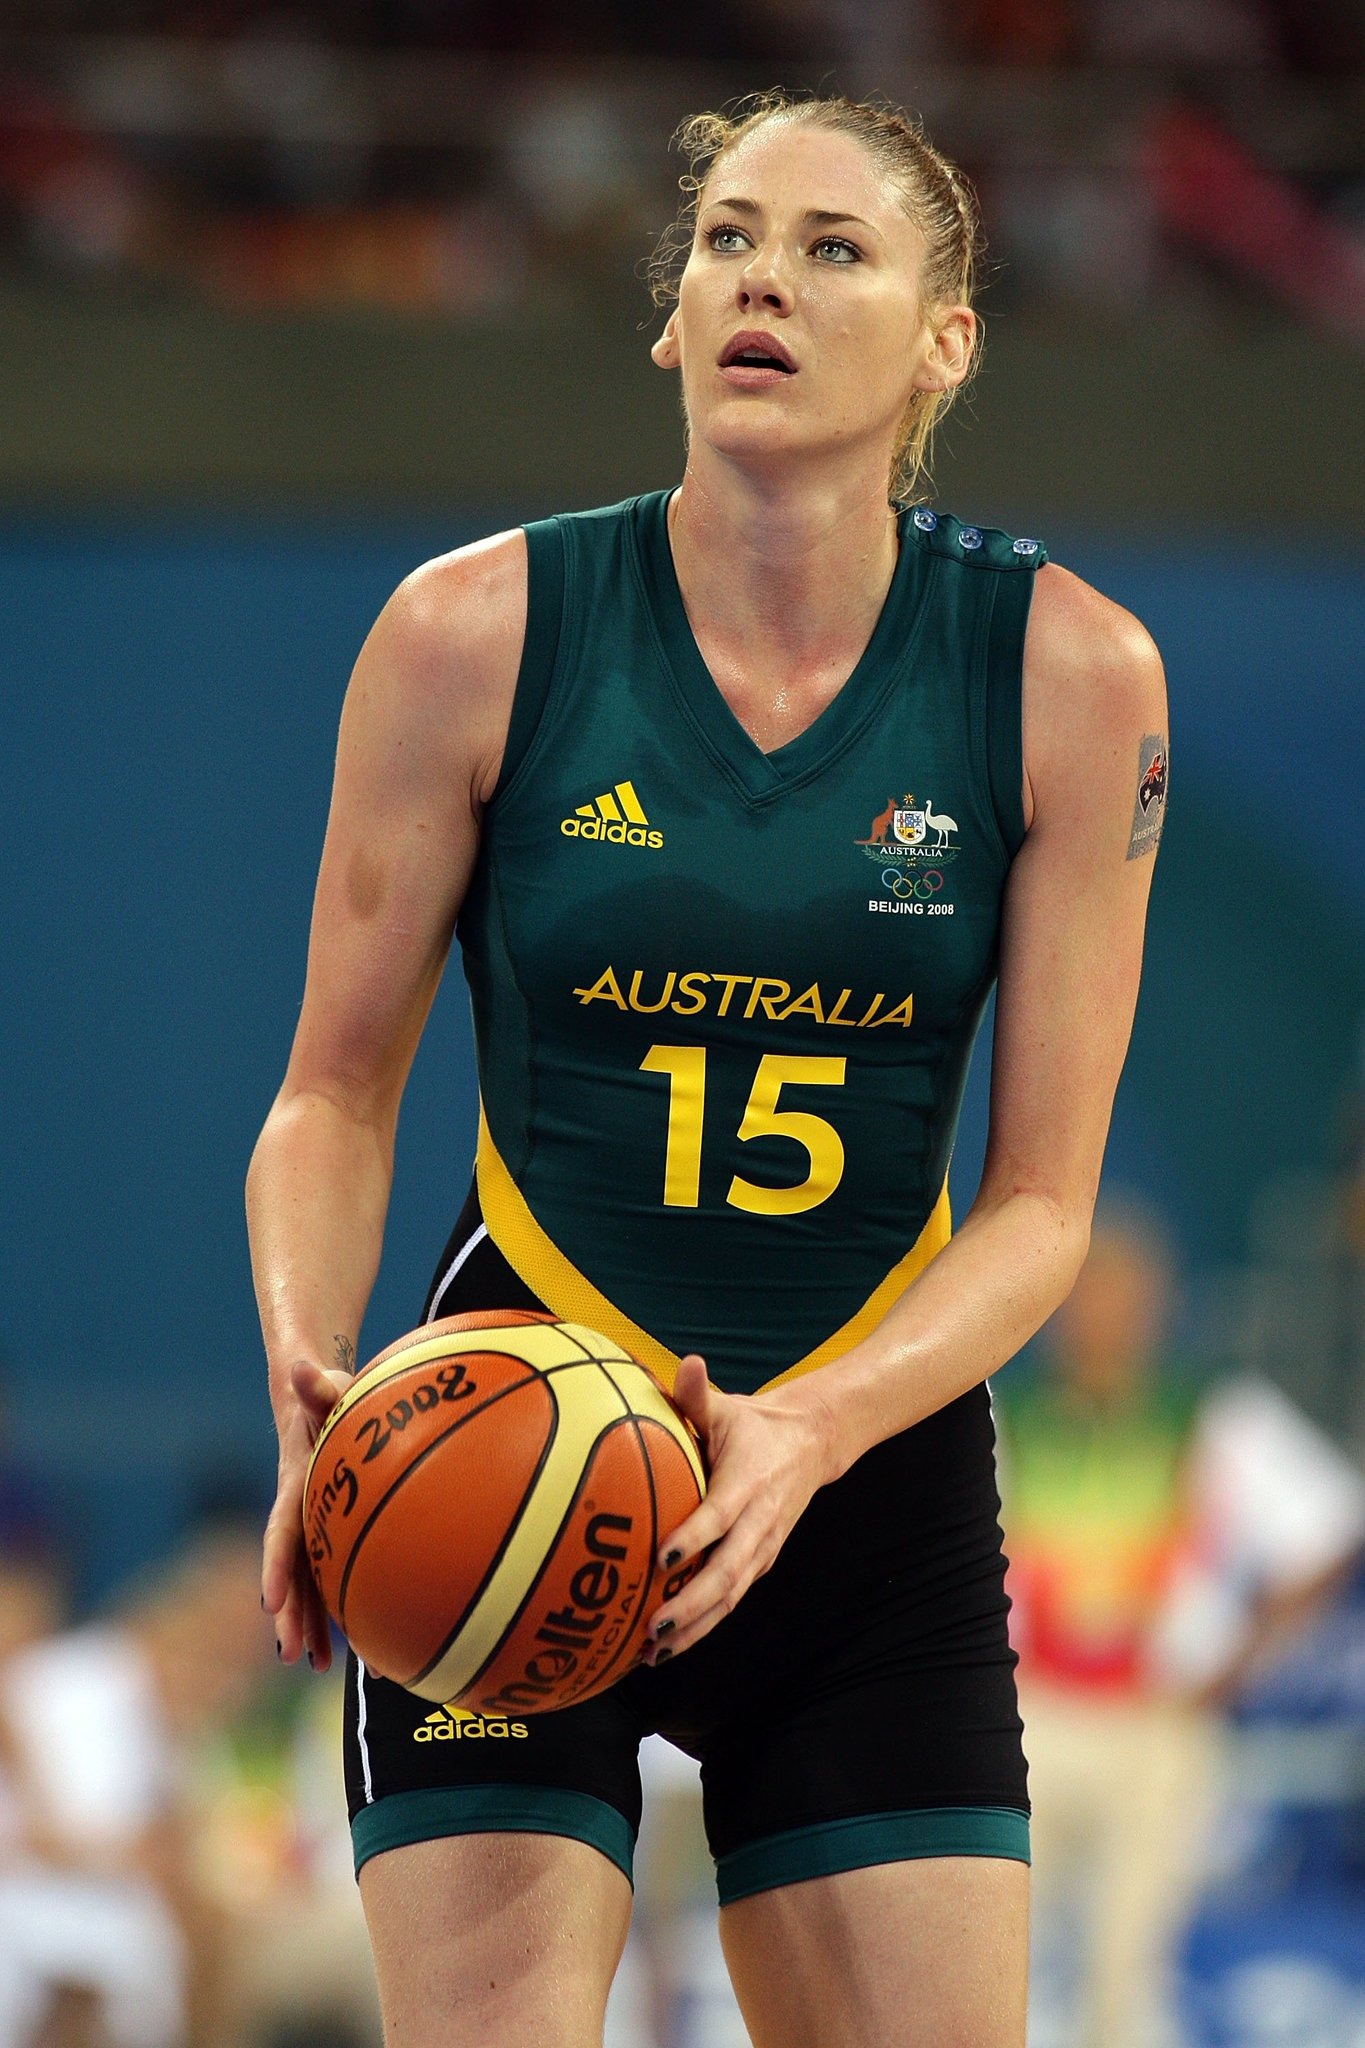 4 x Olympic medals, 2 x @WNBA and 6 x @WNBL championships...a living legend who needs no intro: @laurenej15! #DeakinWISE #WomenInSport https://t.co/7JQ9N8lMOR